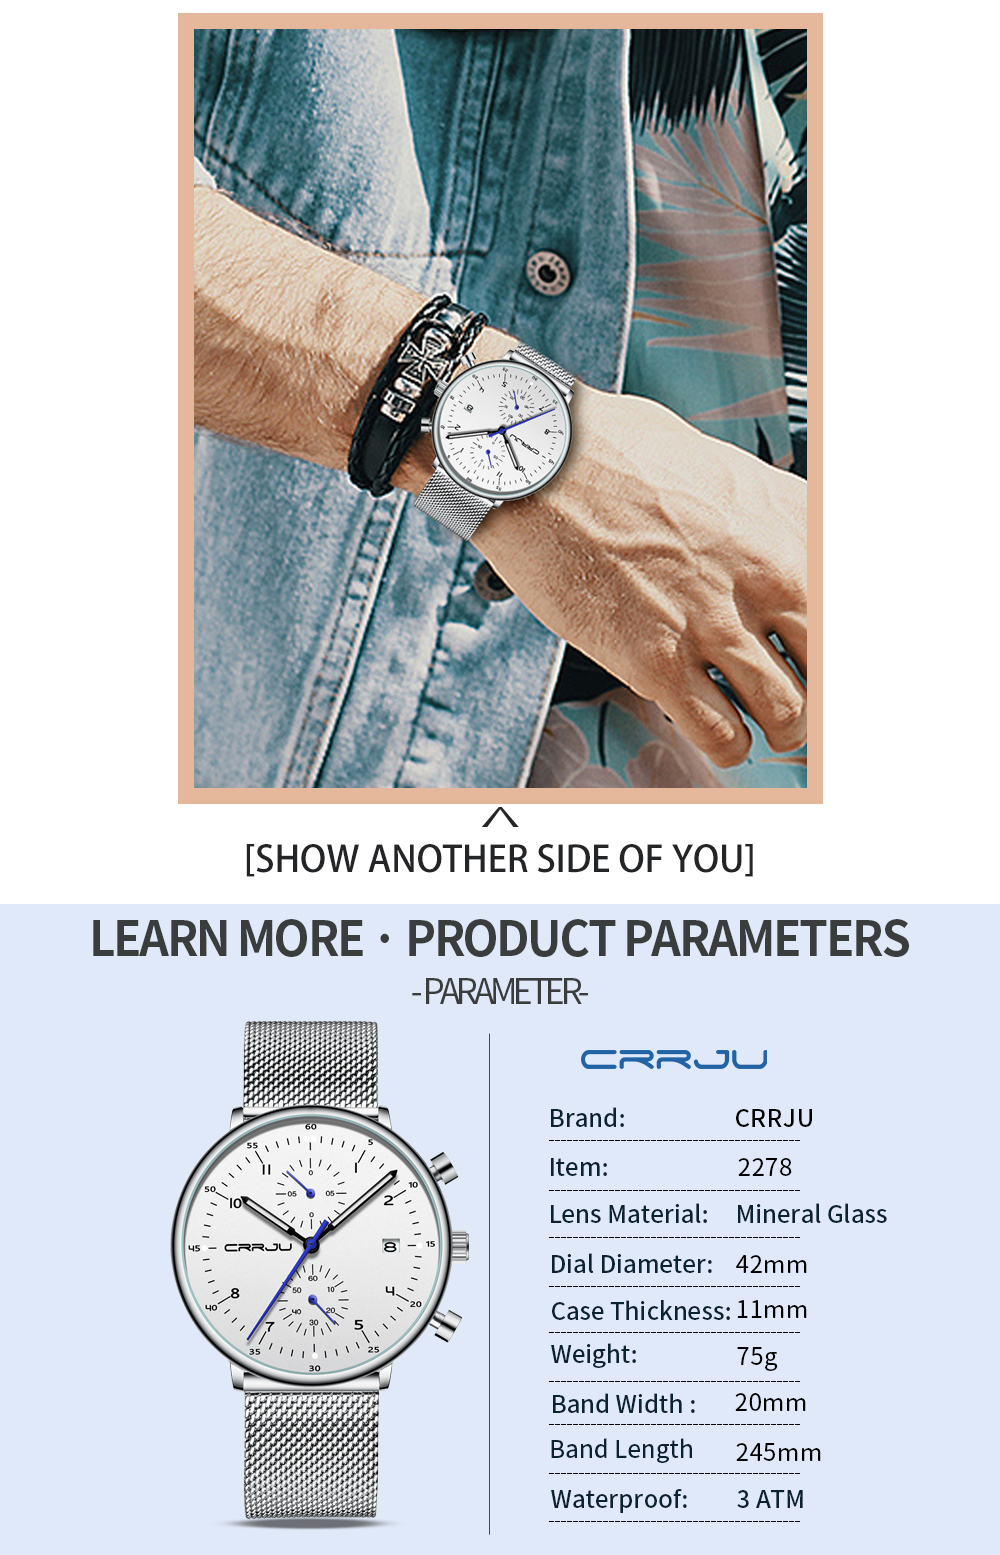 Mens Watch CRRJU Luxury Top Brand Men Stainless Steel WristWatch Men's Military waterproof Date Quartz watches relogio masculino H6ee12c9e92c449a9b1316b3681ee13d1a